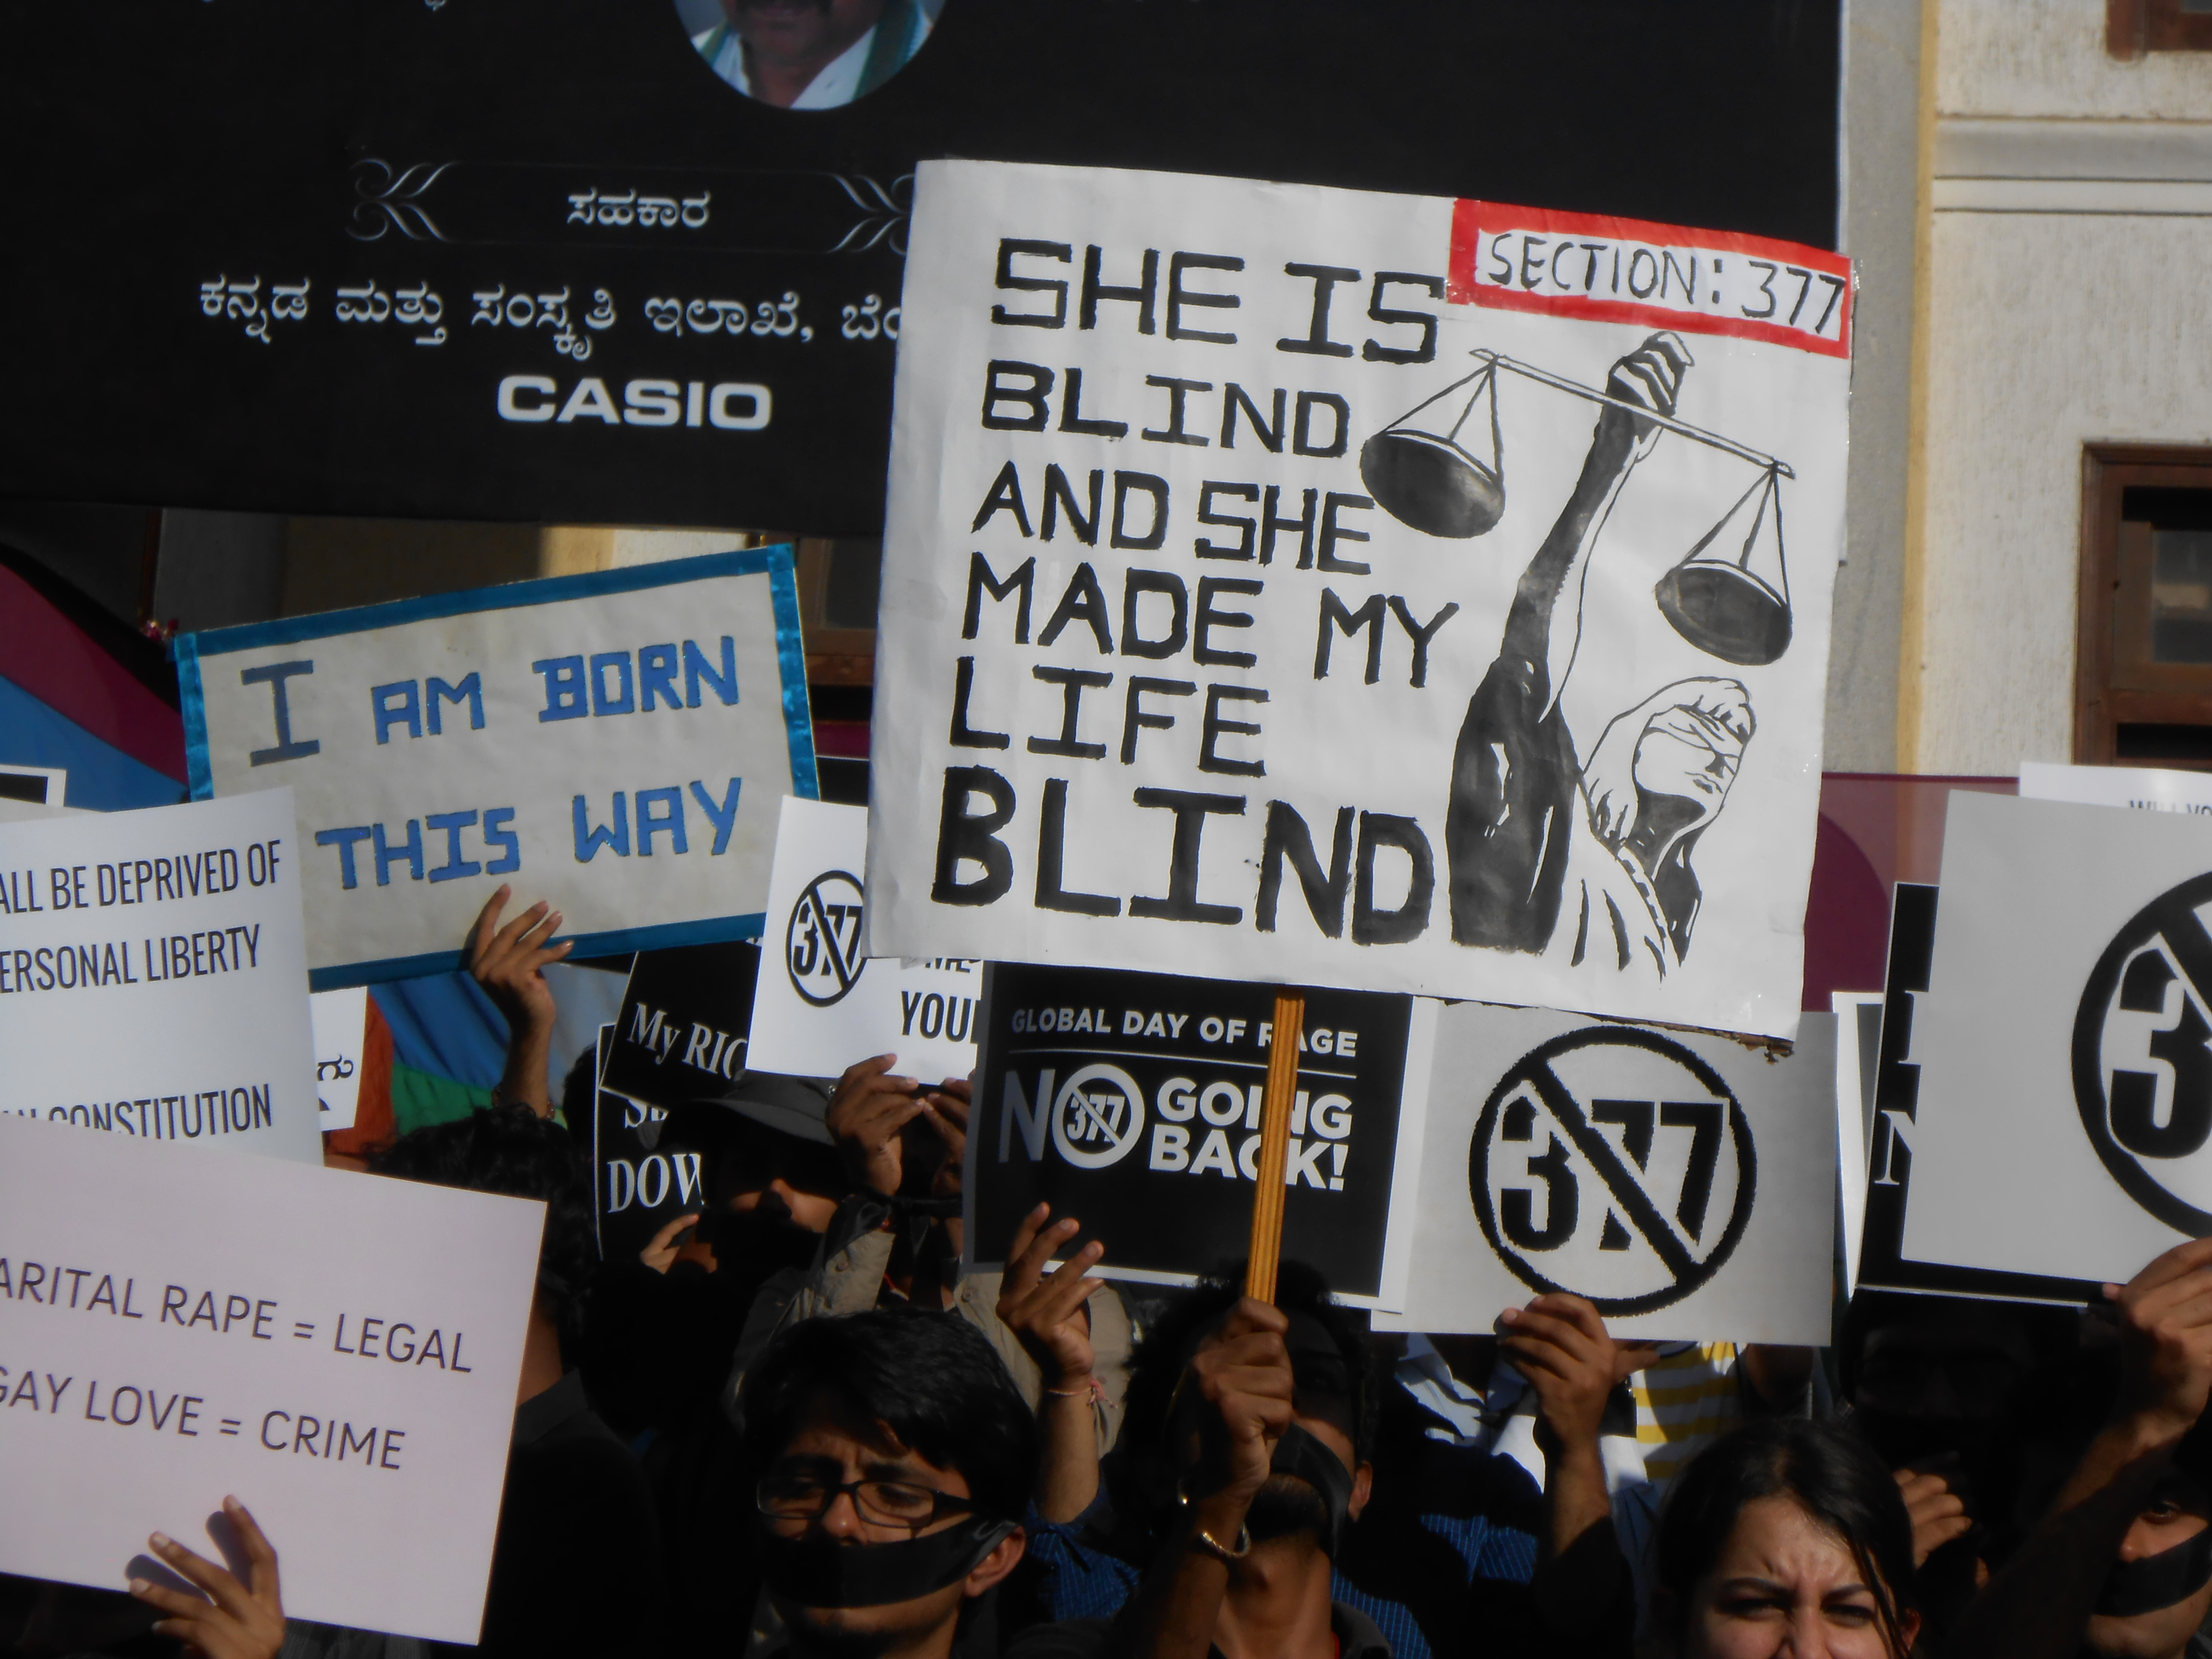 Sec 377 re criminalises homosexuality in India